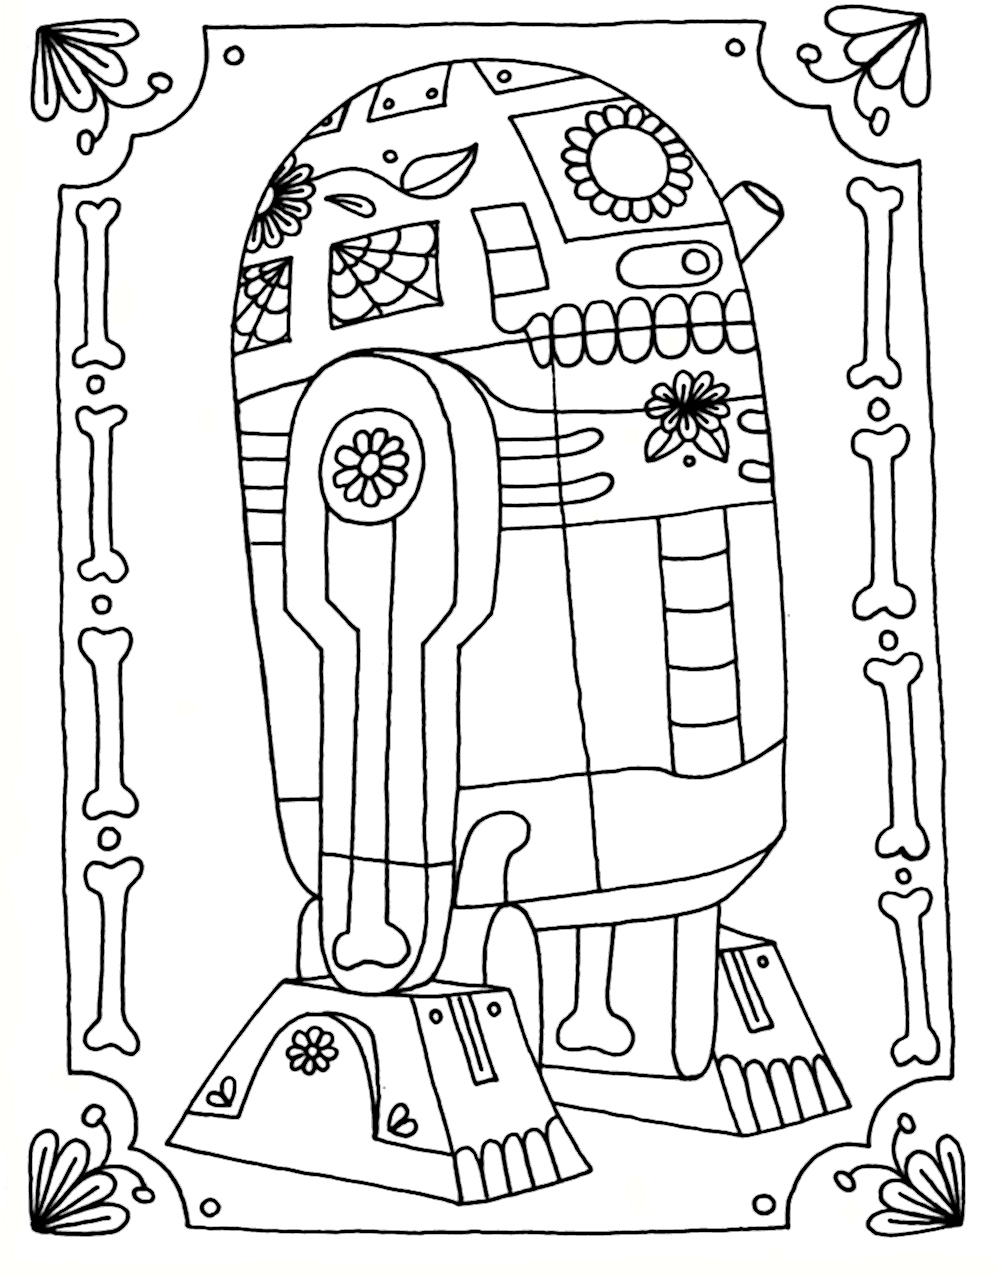 Free R2D2 Coloring Pages Fan Art printable